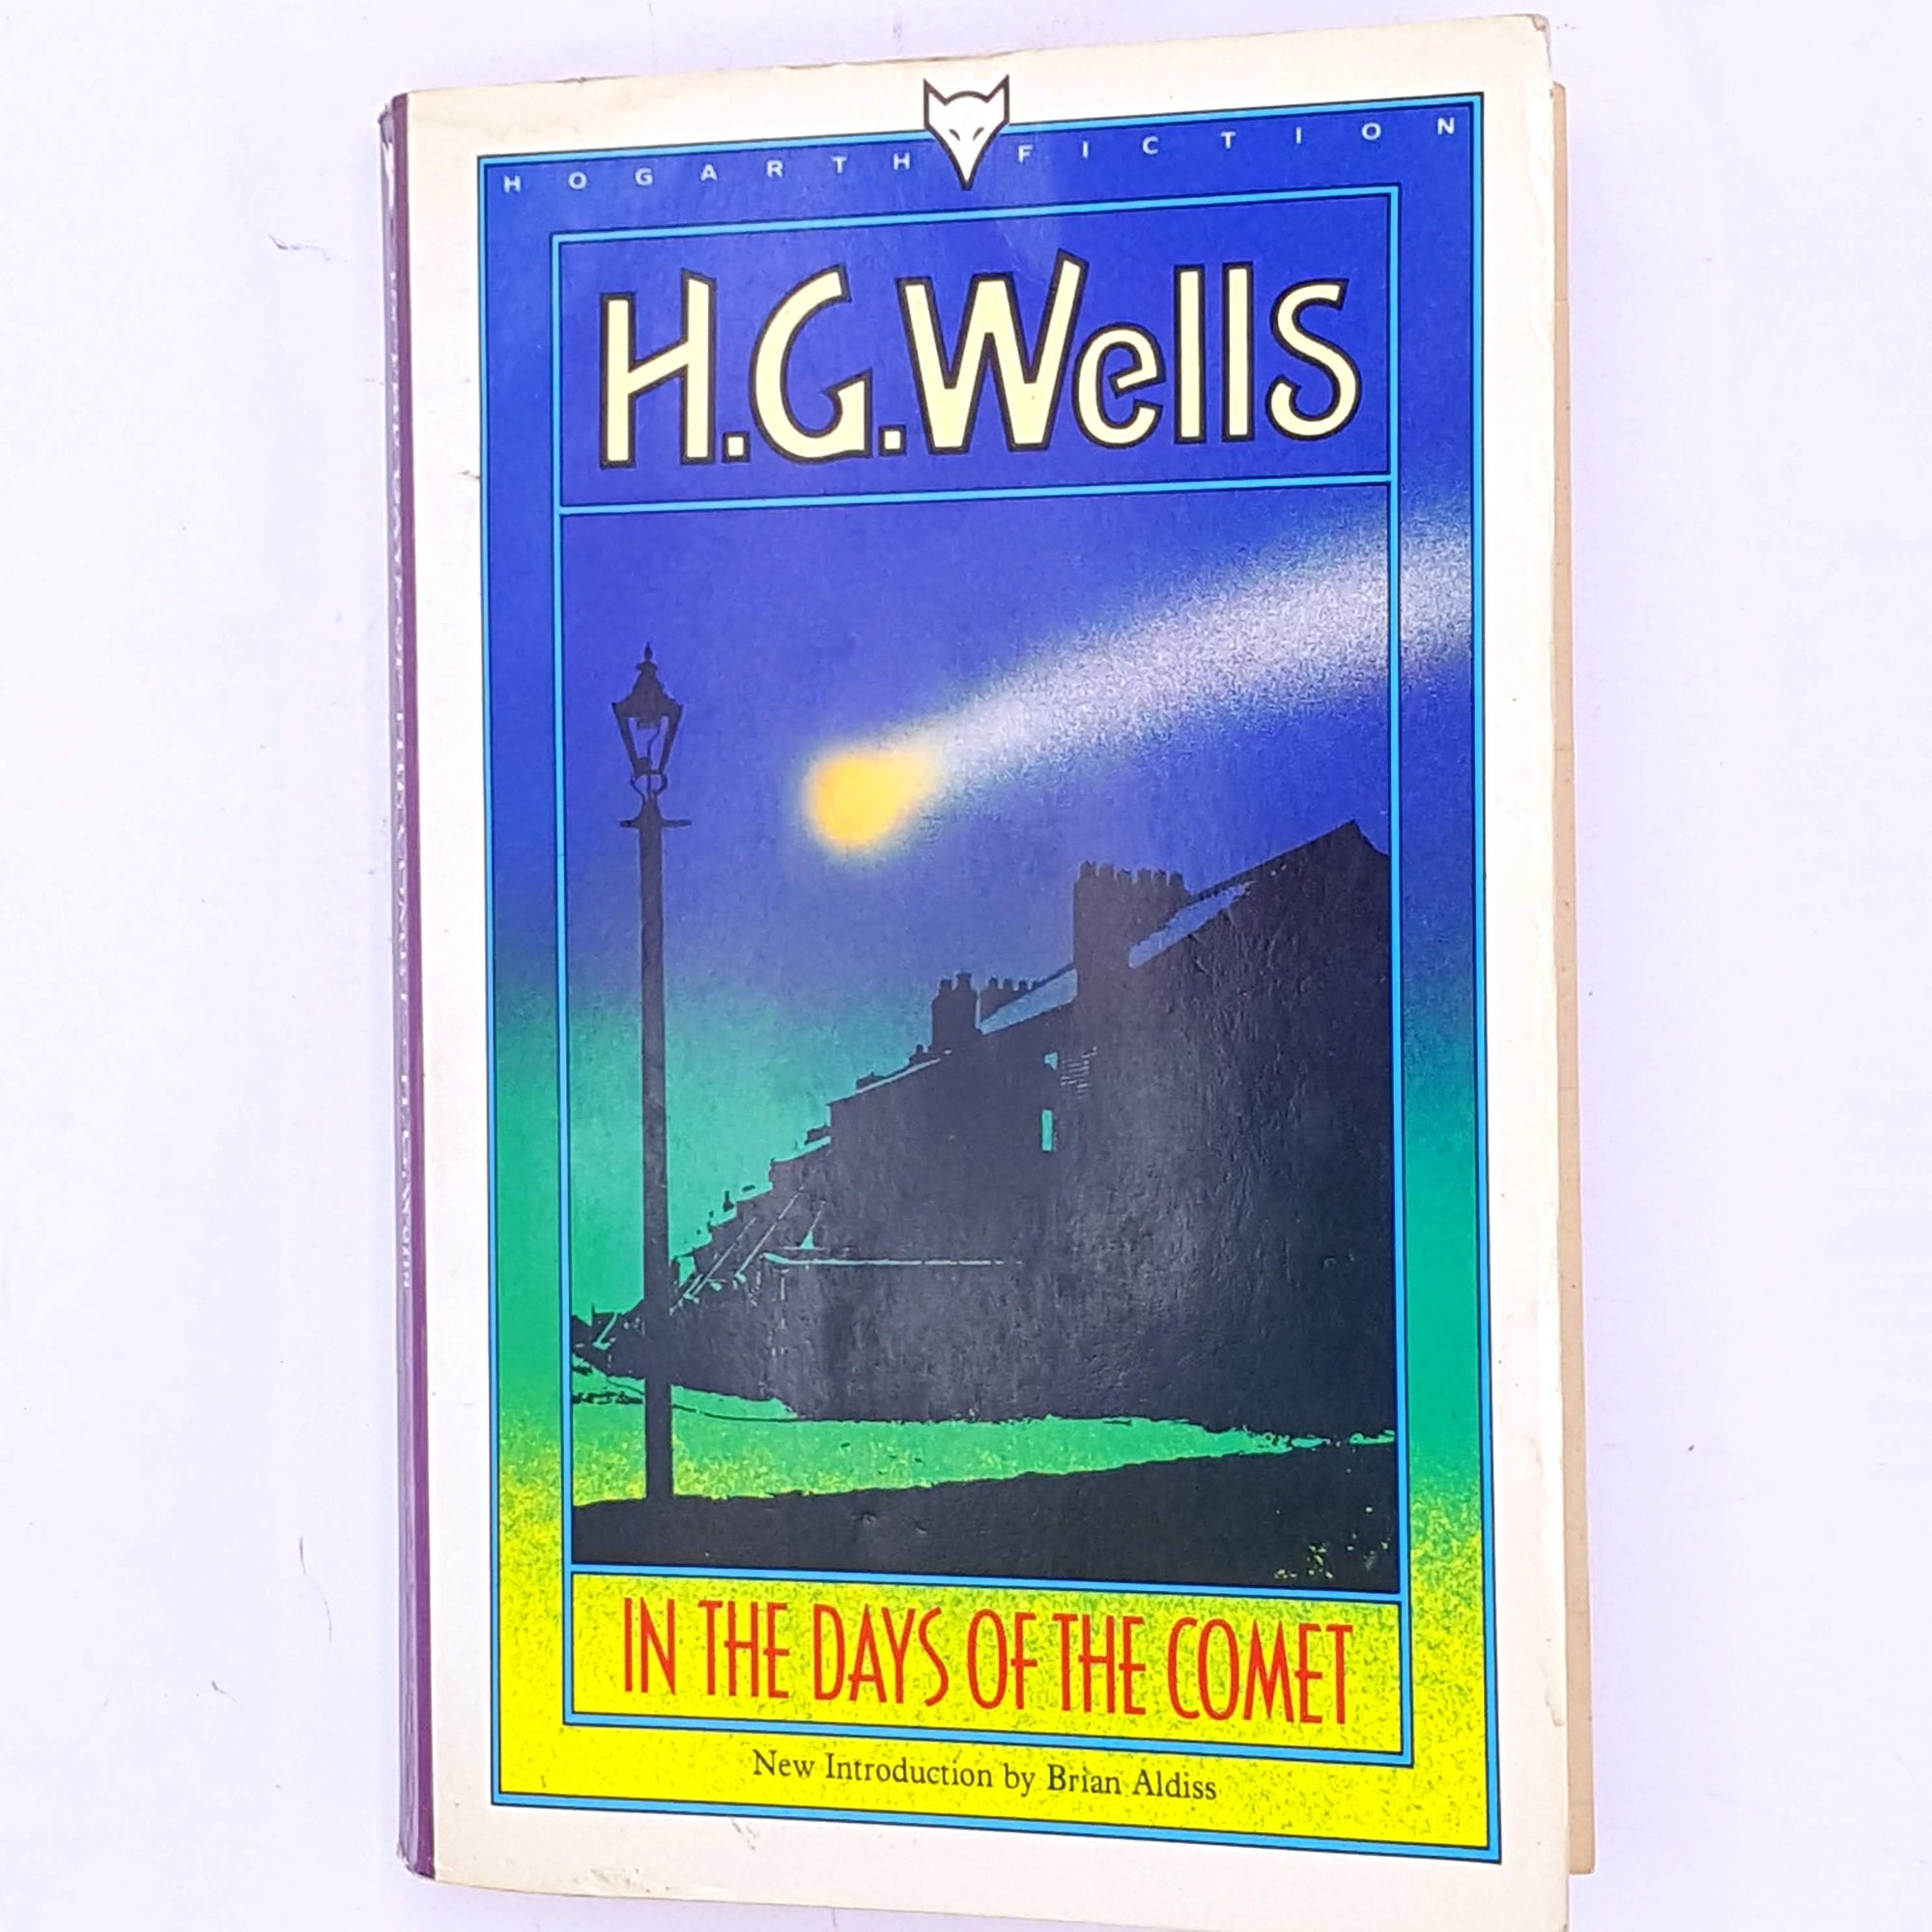 old-books-thrift-H.G.-Wells- short-stories- antique-In-The-Days-Of-The-Comet-vintage-science-fiction-patterned-decorative-country-house-library-classic-short-story-